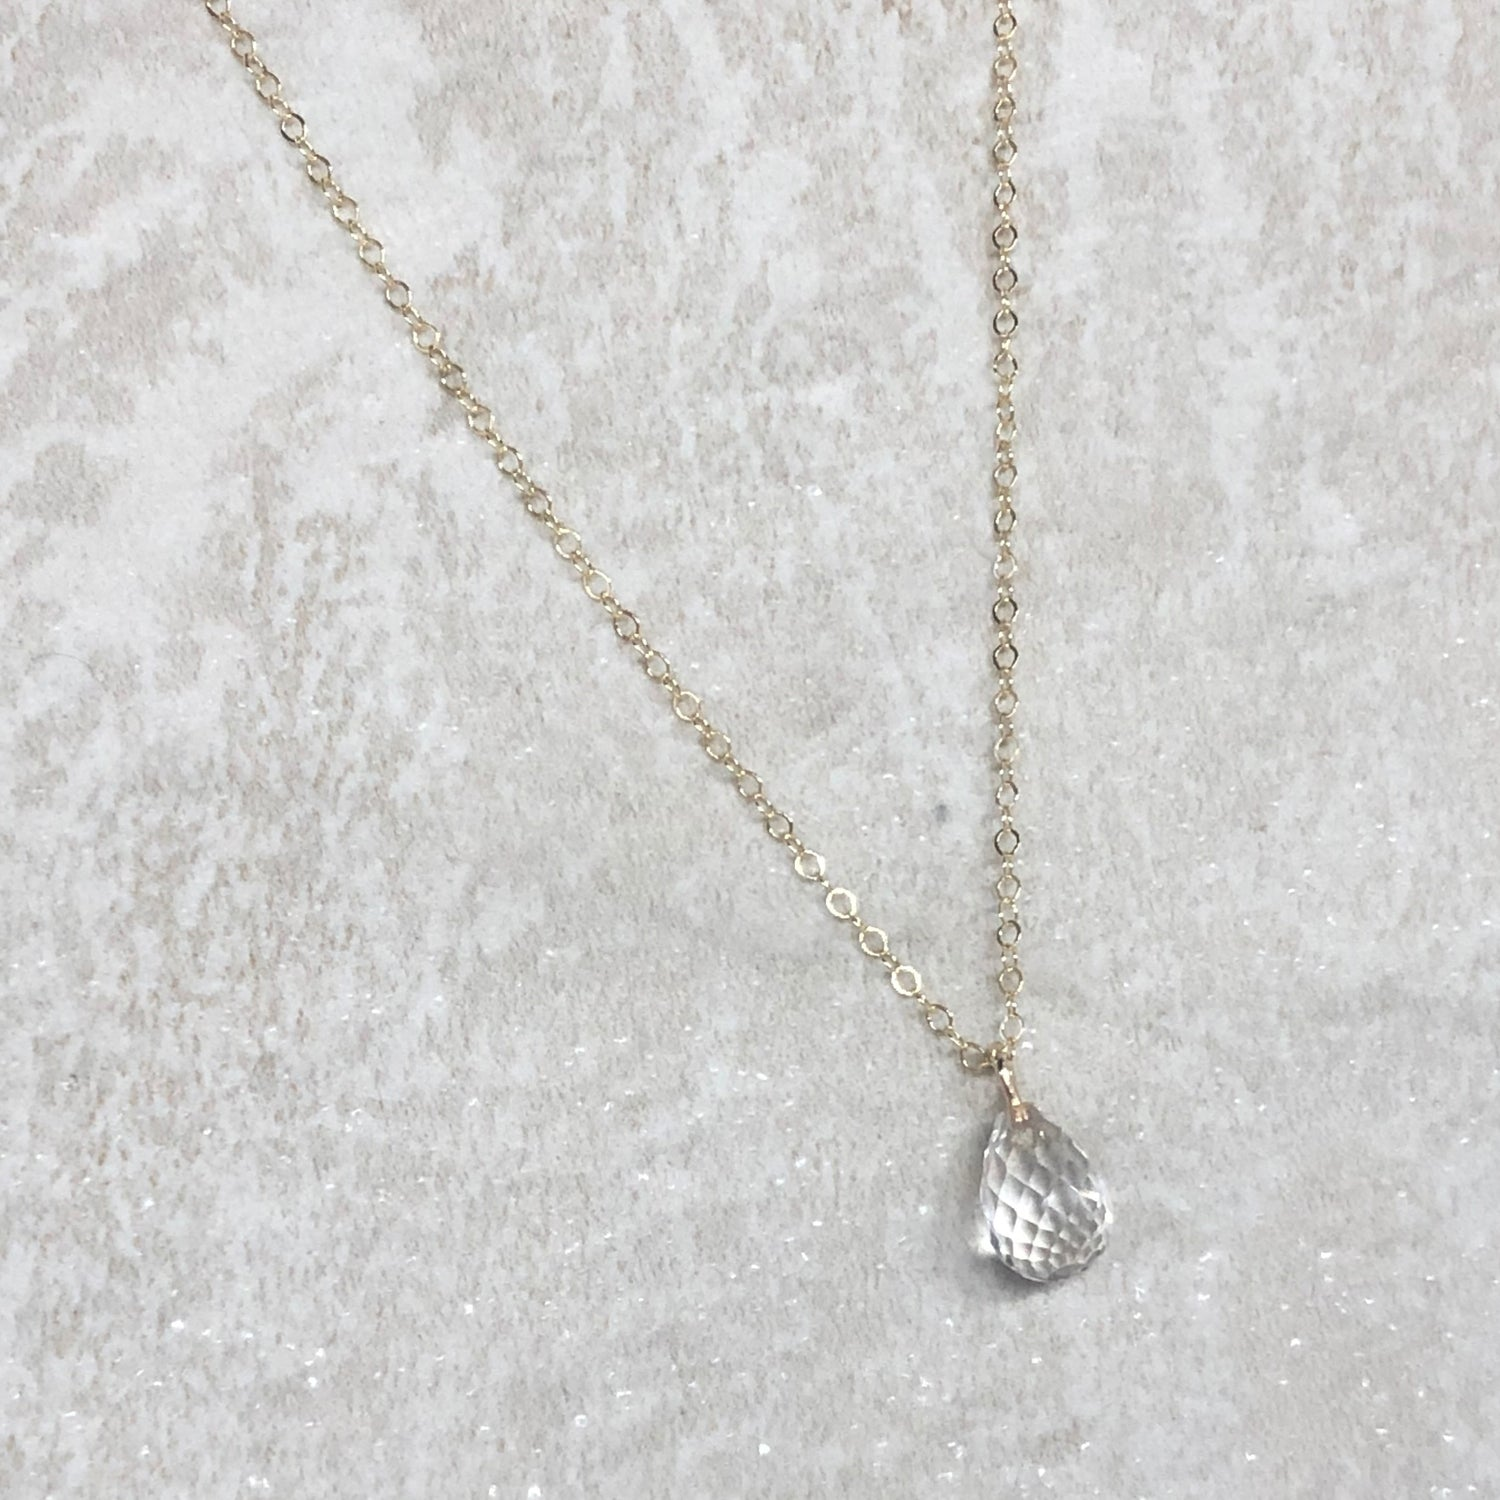 Dainty Quartz Briolette Necklace